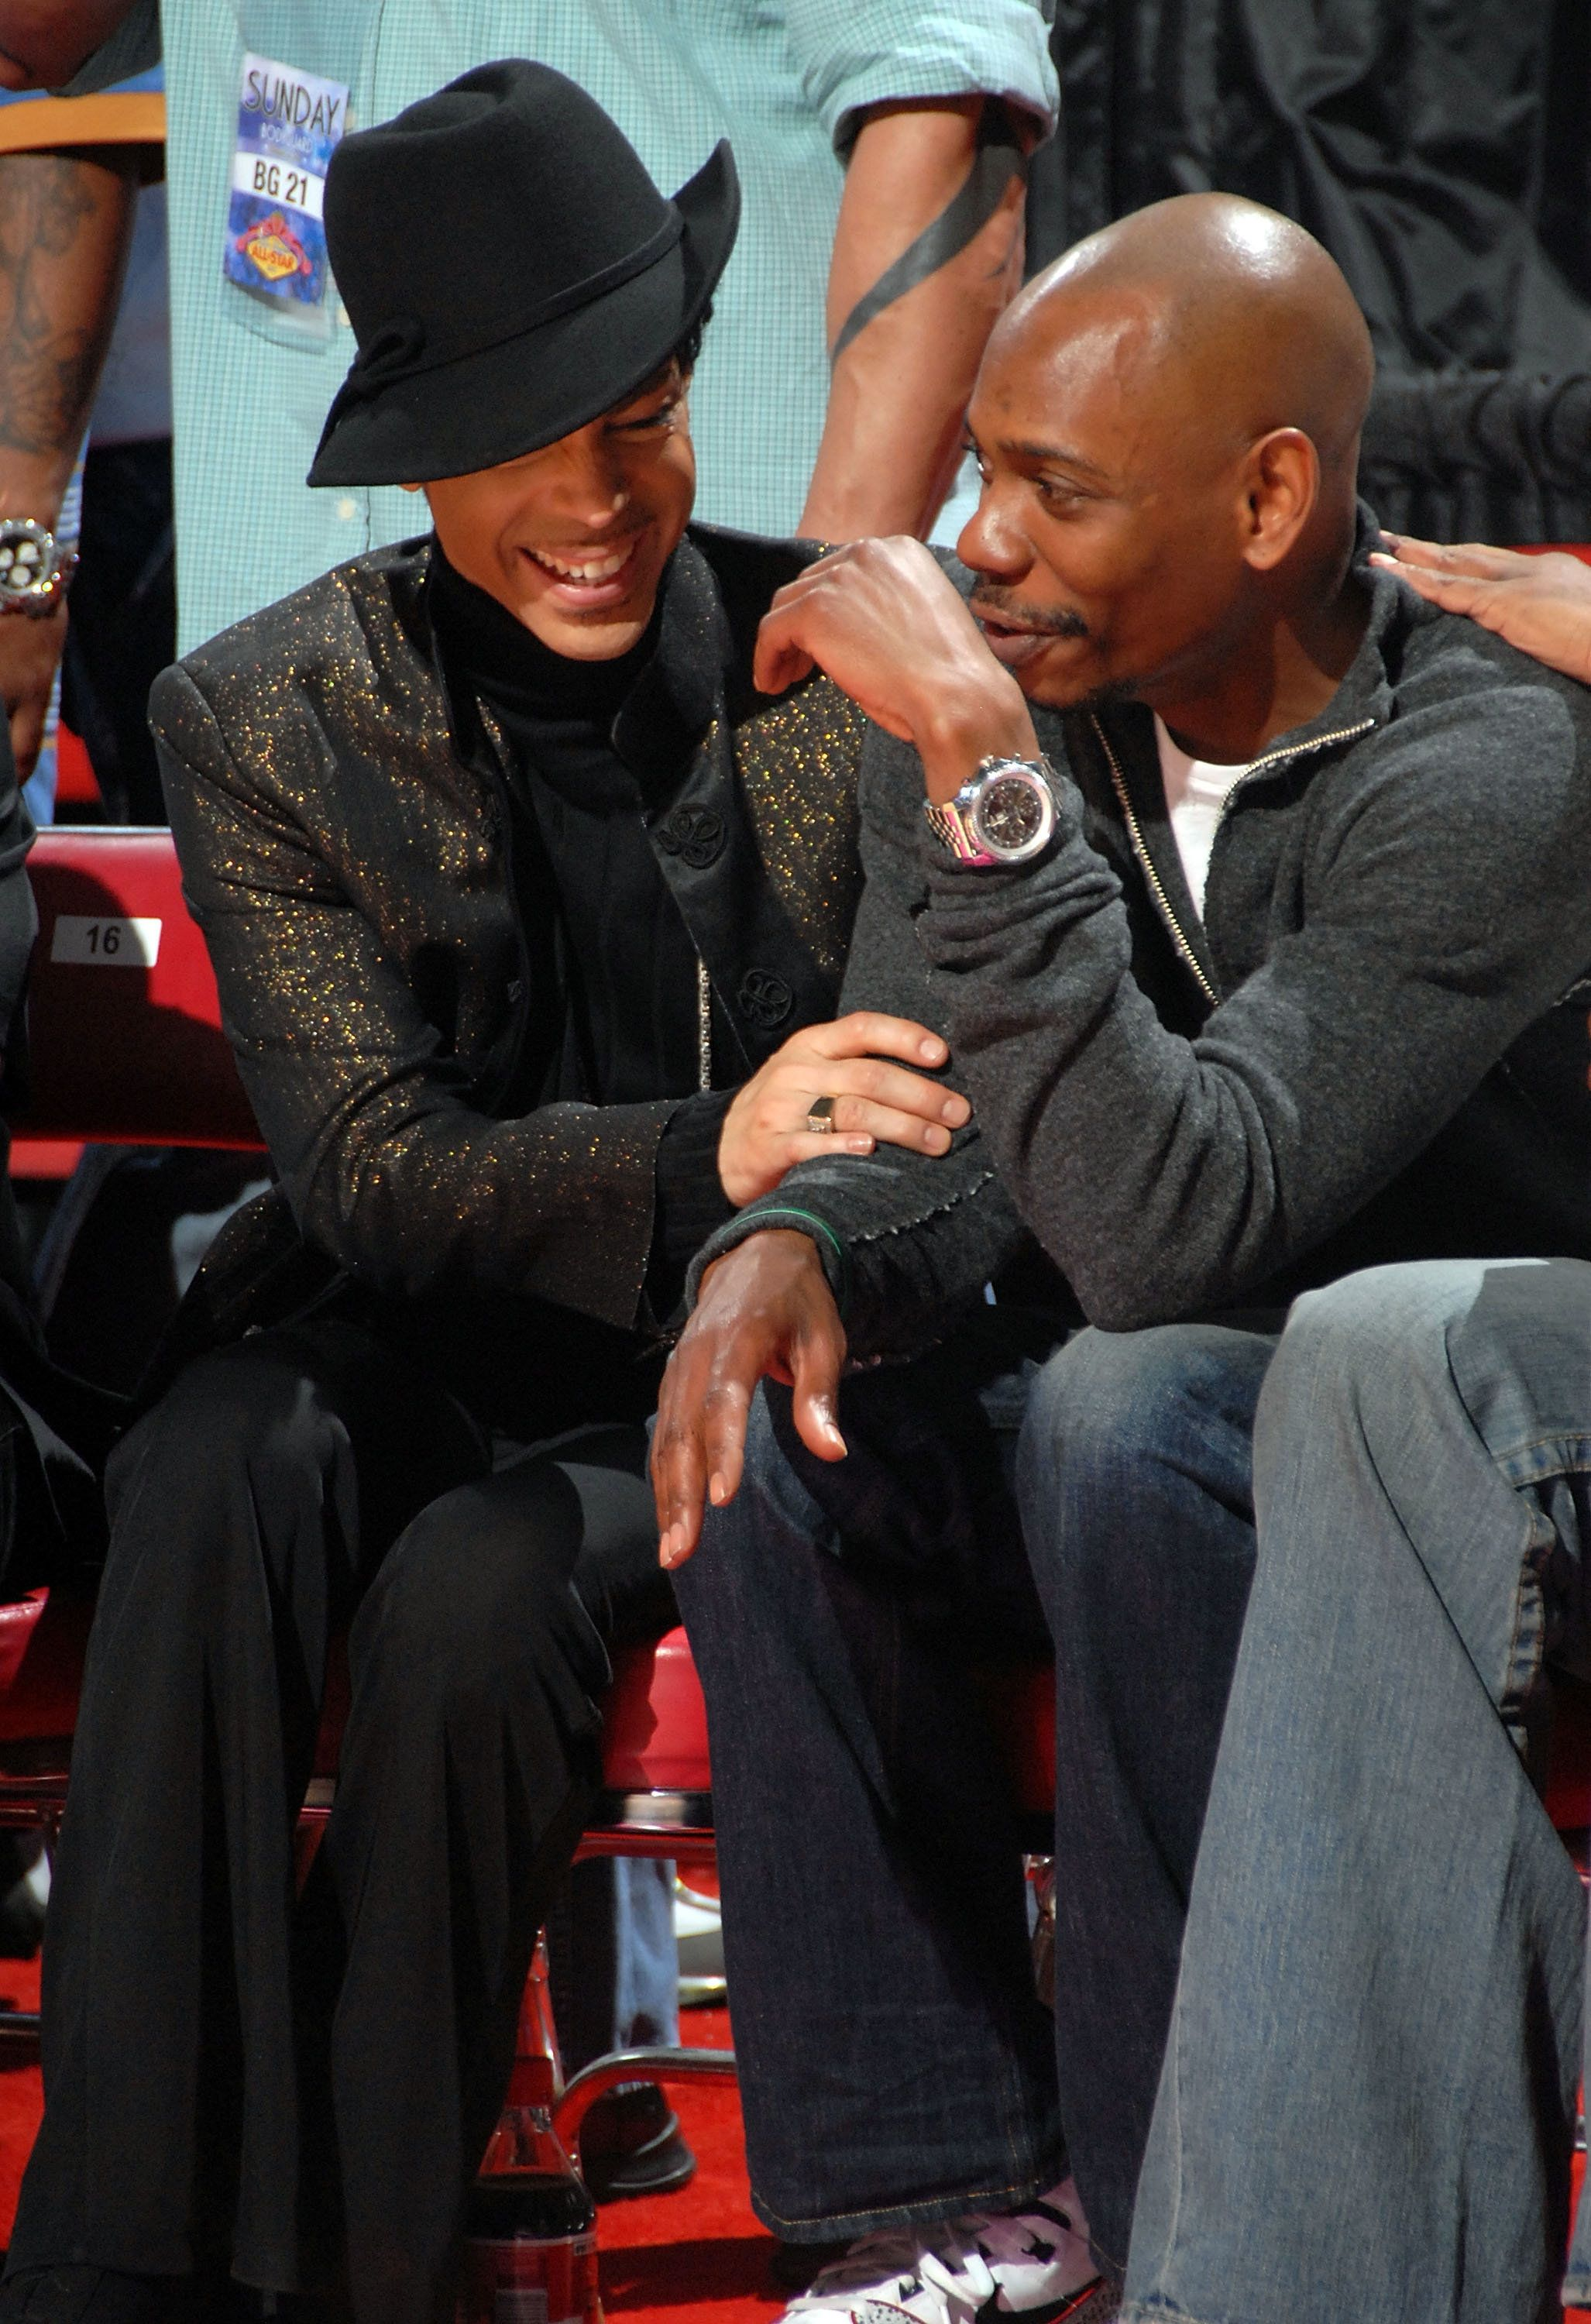 LAS VEGAS - FEBRUARY 18:  Prince sits courtside and talks with comedian Dave Chappelle at the 2007 NBA All-Star Game on February 18, 2007 at Thomas & Mack Center in Las Vegas, Nevada. NOTE TO USER: User expressly acknowledges and agrees that, by downloading and or using this photograph, User is consenting to the terms and conditions of the Getty Images License Agreement. Mandatory Copyright Notice: Copyright 2007 NBAE  (Photo by Andrew D. Bernstein/NBAE via Getty Images)